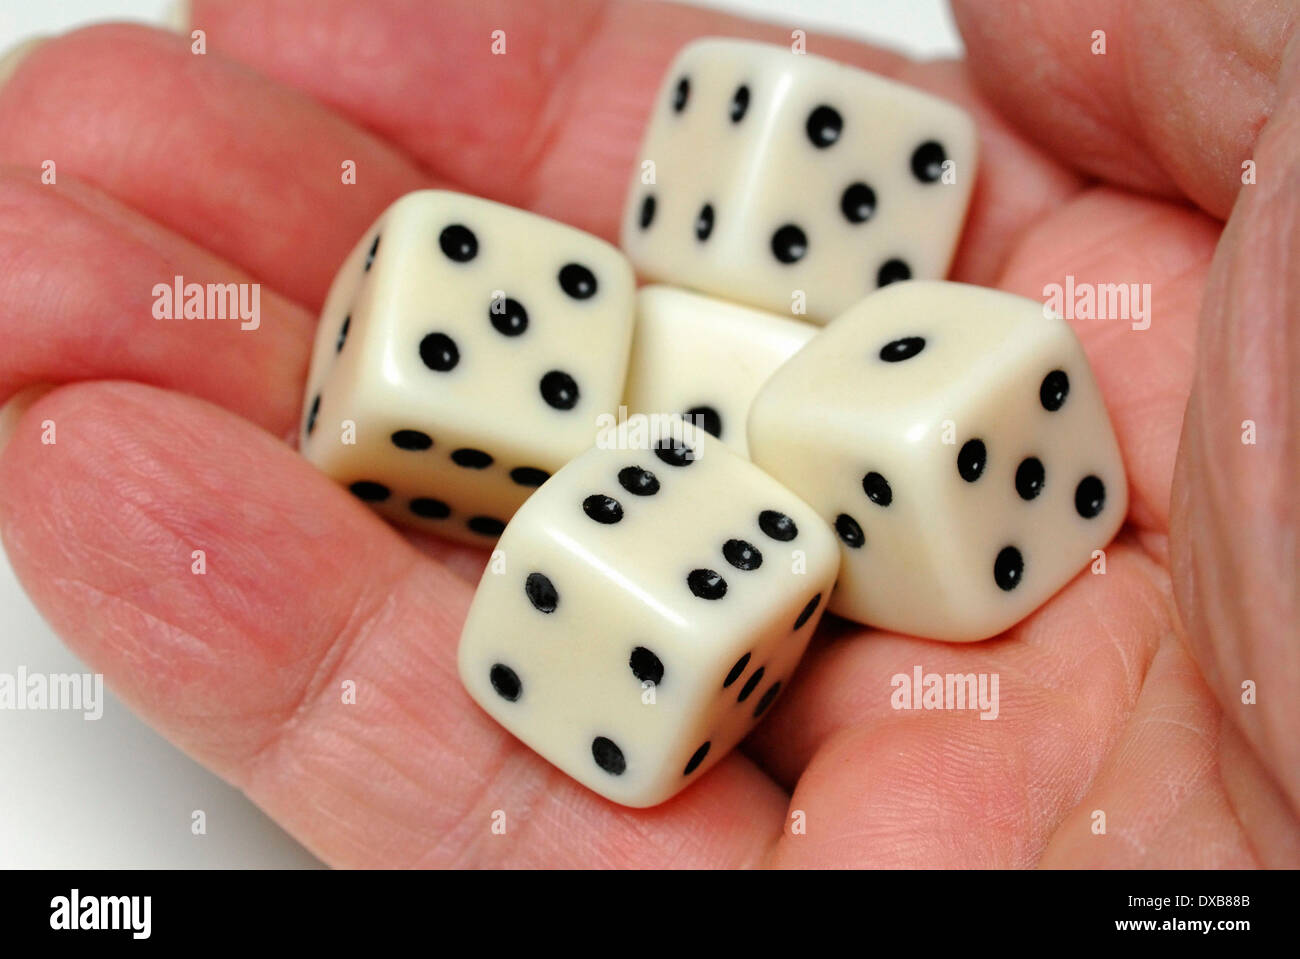 Dice - Stock Image